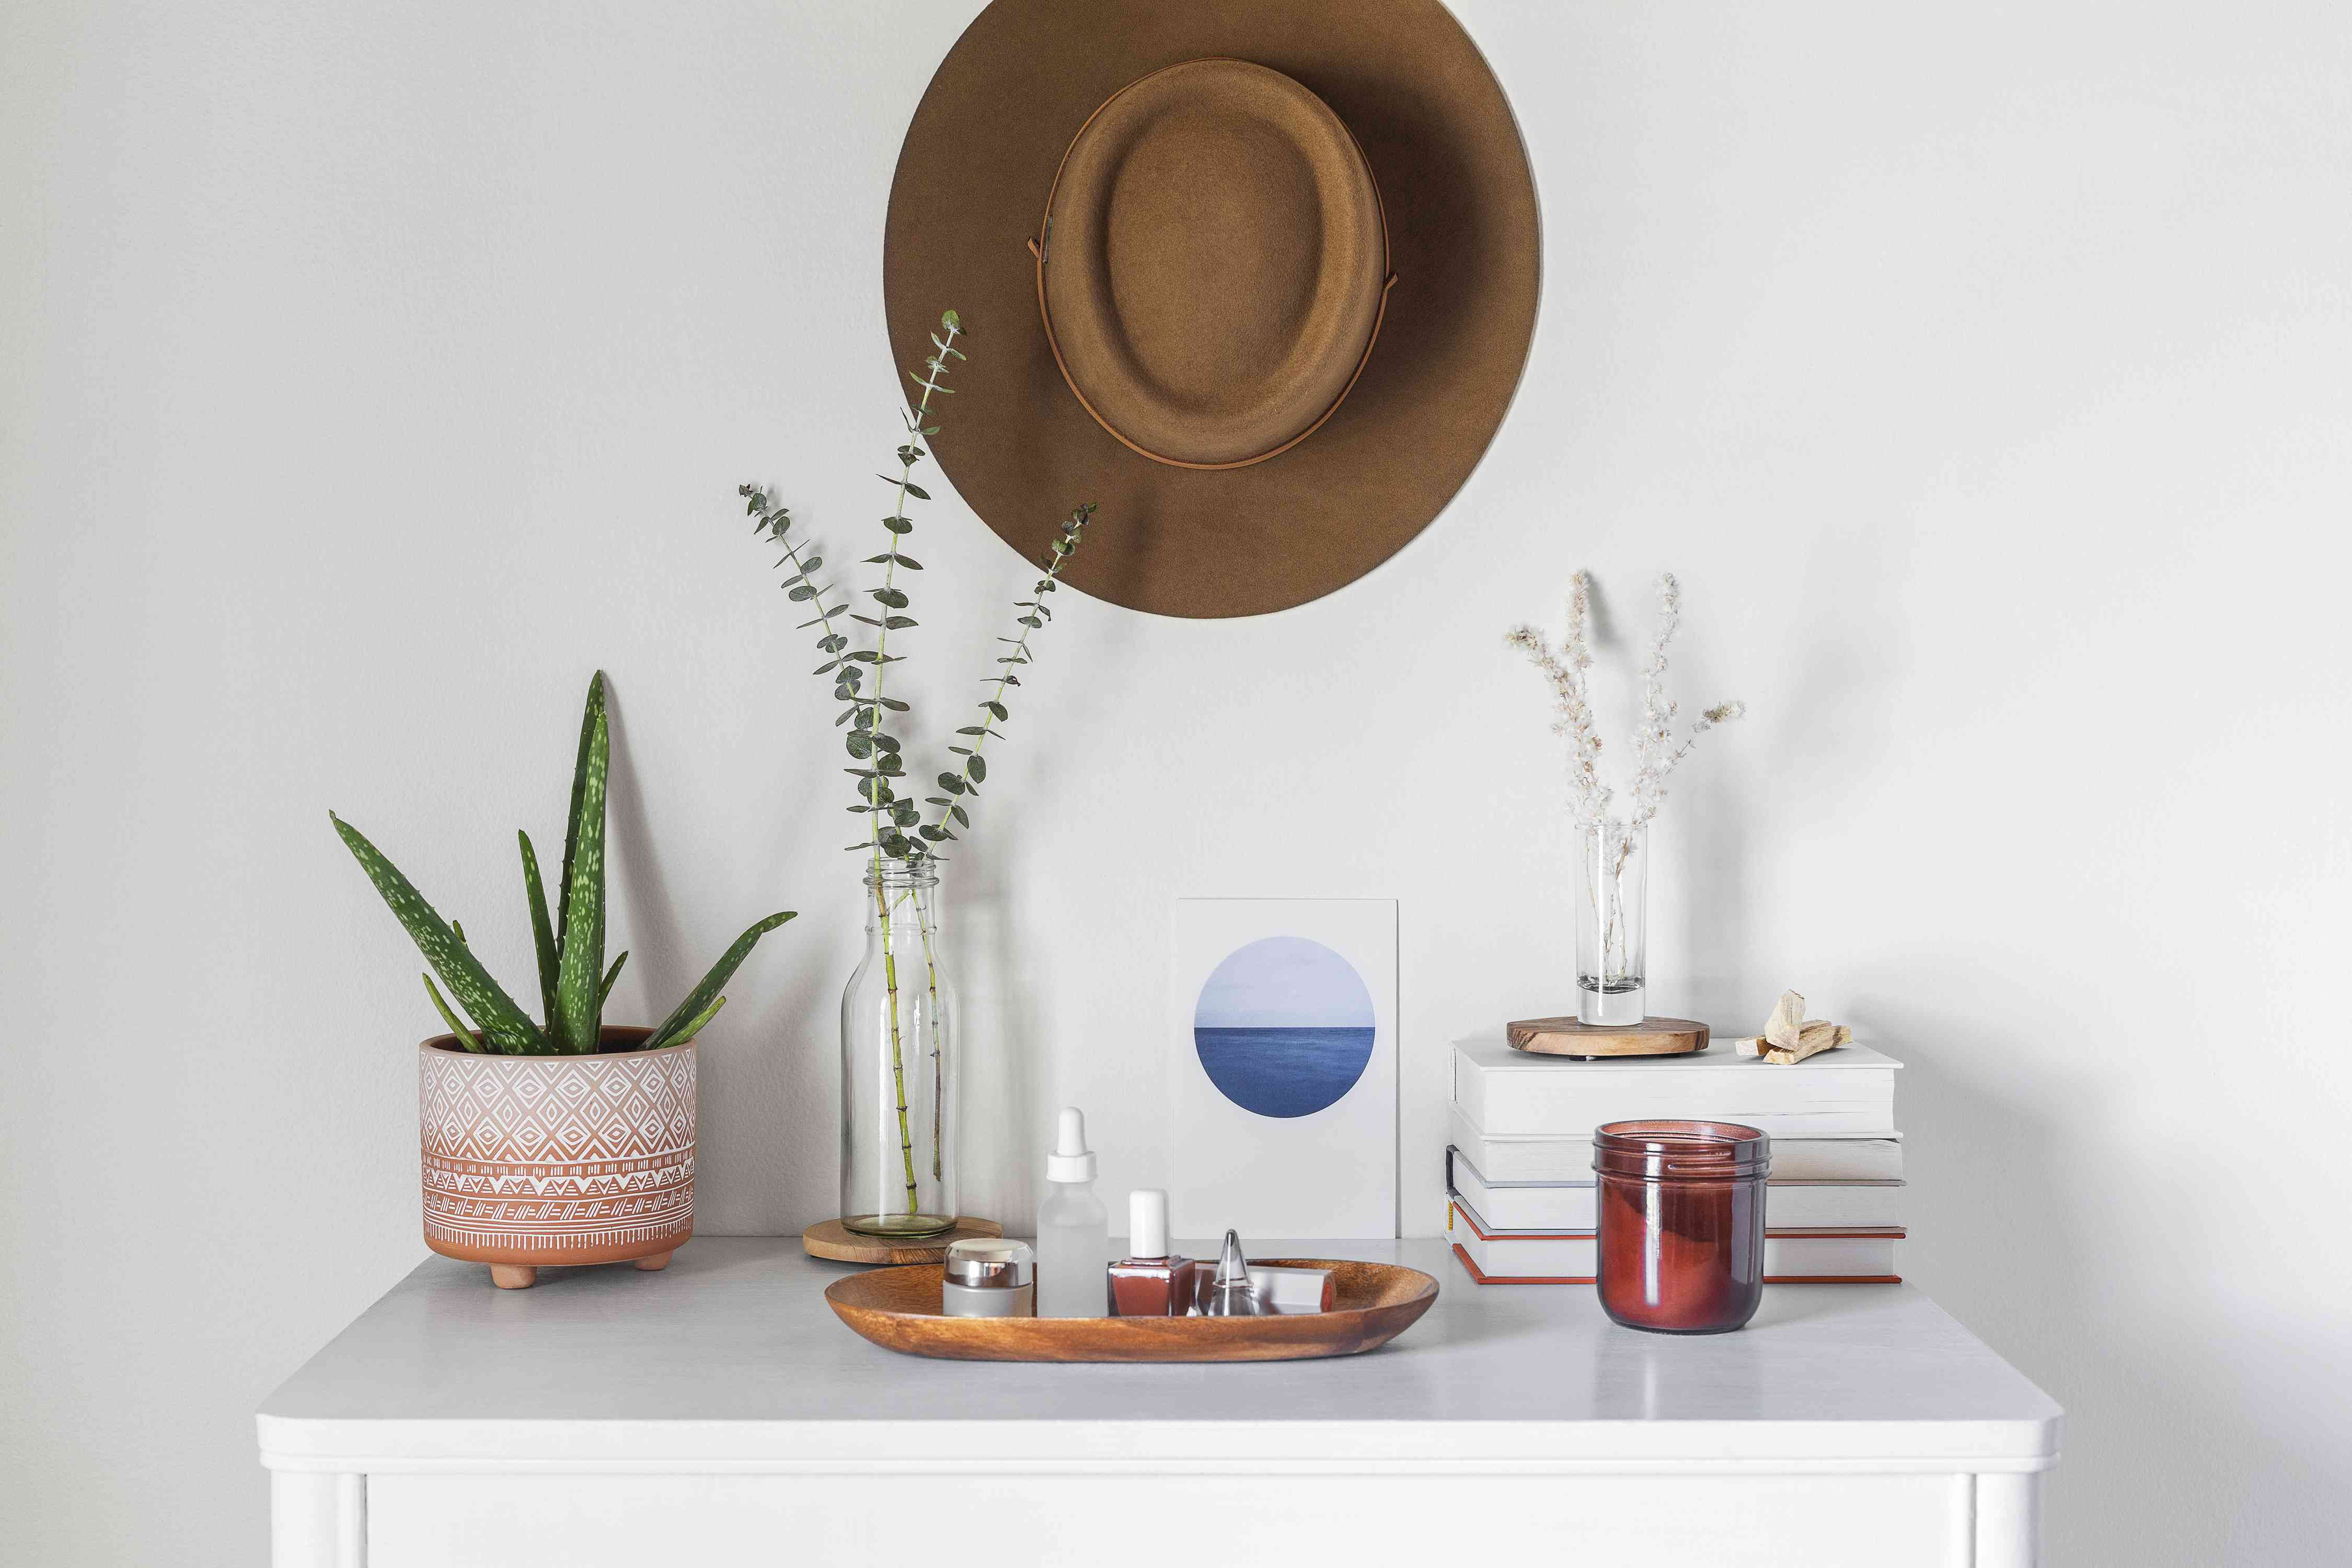 hat used as a large hanging object centered over the dresser